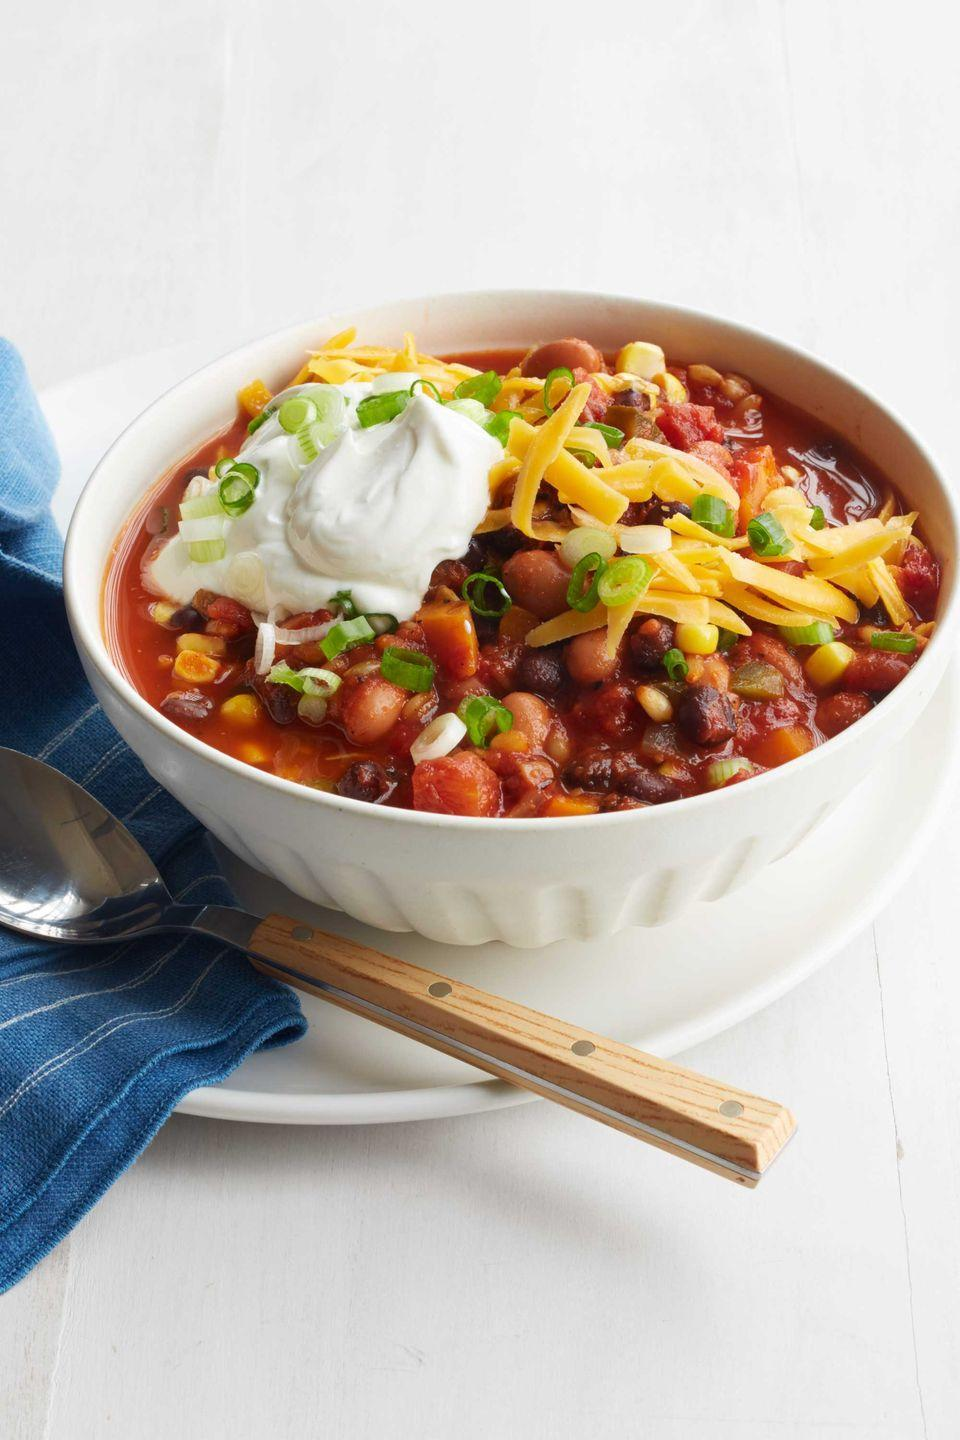 """<p>Winter calls for chili! Chili is best when it simmers for a couple of hours so all of the tasty flavors in this vegetarian recipe can blend together for a comforting result. </p><p><a href=""""https://www.womansday.com/food-recipes/food-drinks/recipes/a52065/vegetarian-chili-with-wheat-berries-beans-and-corn/"""" rel=""""nofollow noopener"""" target=""""_blank"""" data-ylk=""""slk:Get the Vegetarian Chili with Wheat Berries, Beans, and Corn recipe."""" class=""""link rapid-noclick-resp""""><em>Get the Vegetarian Chili with Wheat Berries, Beans, and Corn recipe.</em></a></p>"""